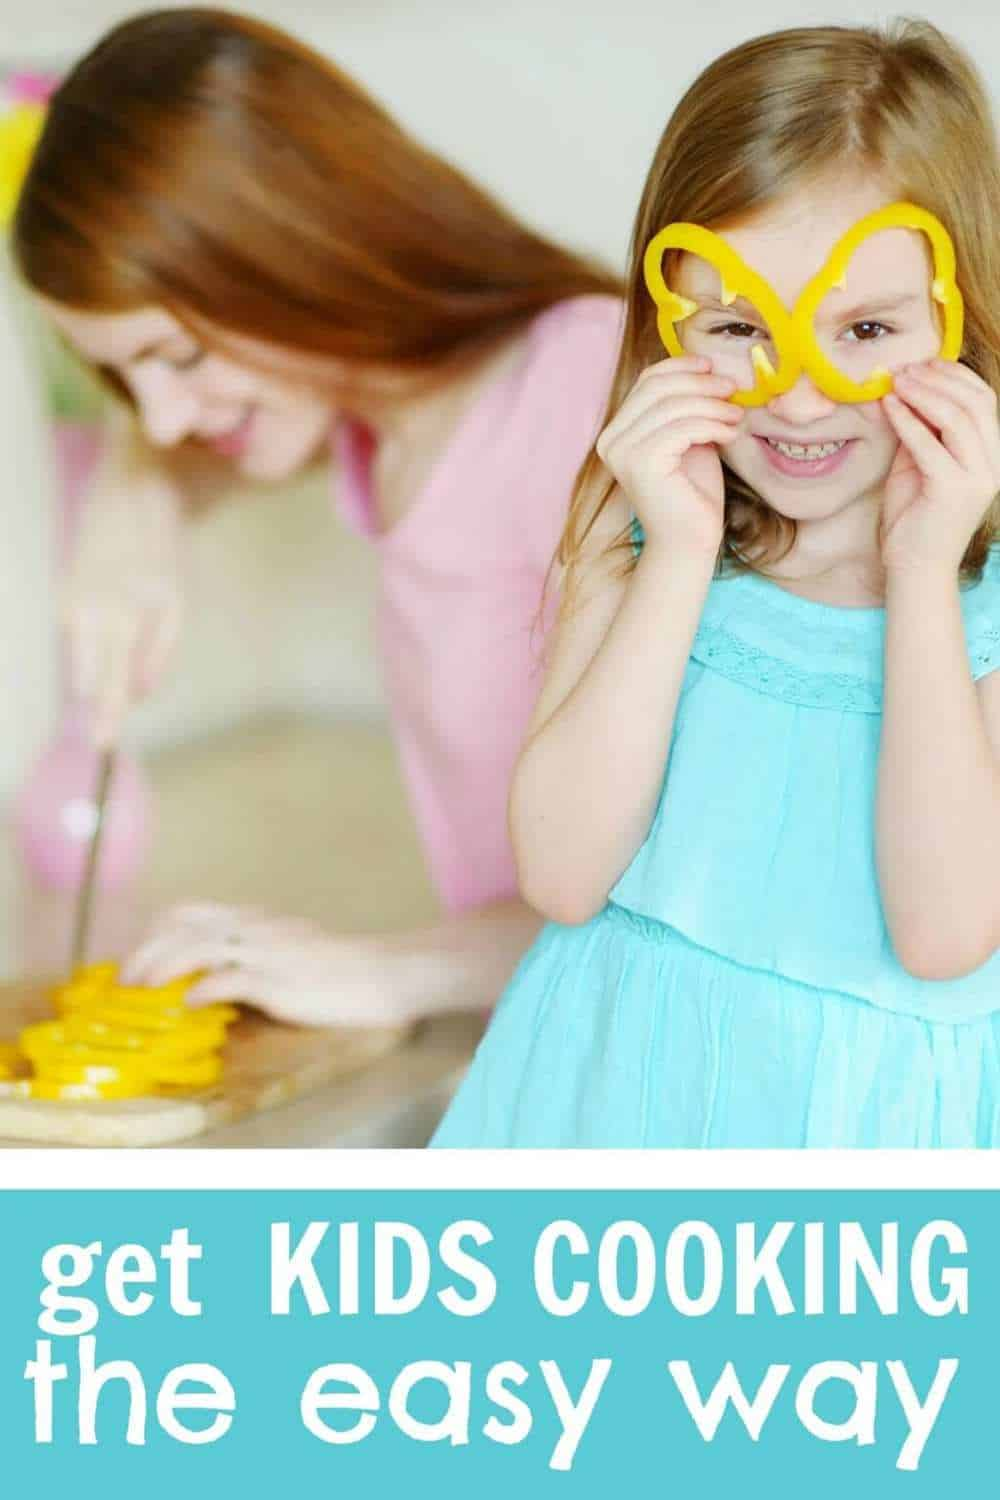 The easy way to get kids cooking